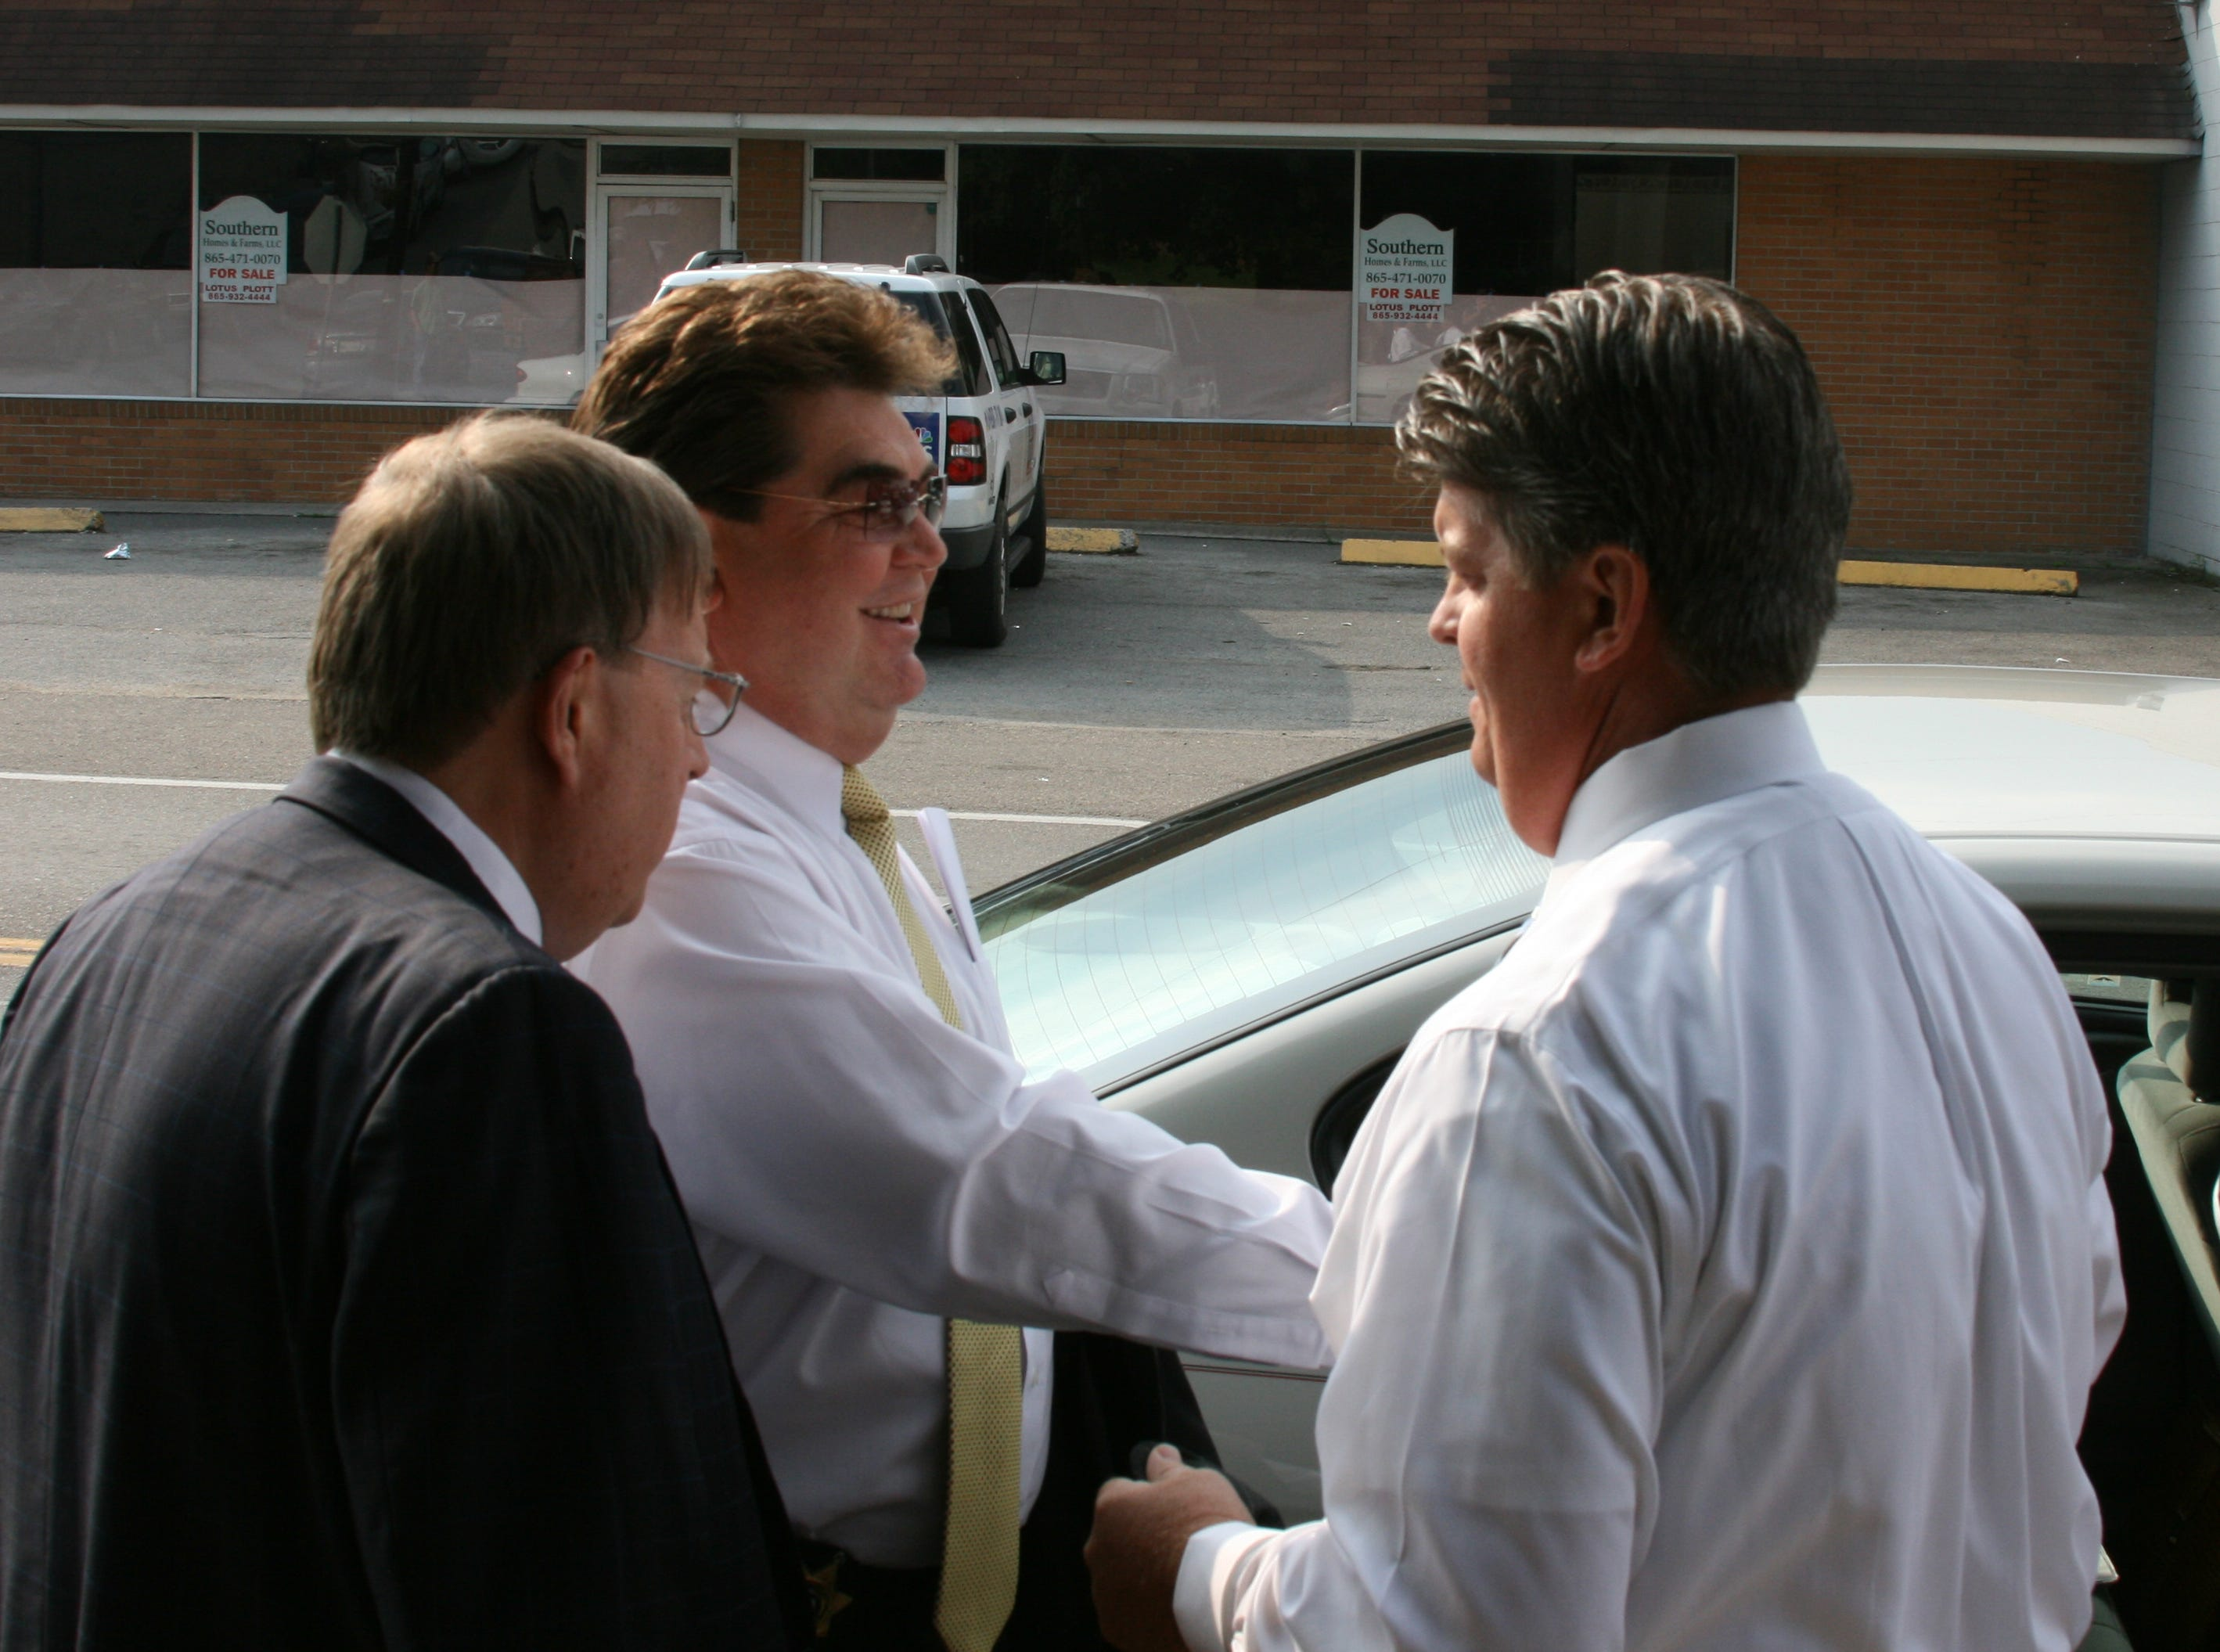 Claiborne County Sheriff David Ray, center, with attorneys John T. Milburn Rogers, left, and David Stanifer leave after a hearing in Hancock County Criminal Court Wednesday in Sneedville, Tenn. Ray was placed on a two-year pre-trial diversion program and ordered to perform 250 hours of community service in connection with sexual assault, statutory rape and statutory rape by an authority figure charges. Ray is accused of raping a girl on a deer-hunting trip in Hancock County in 2006, when she was 17, and on an earlier occasion in 2005, when she was 15.